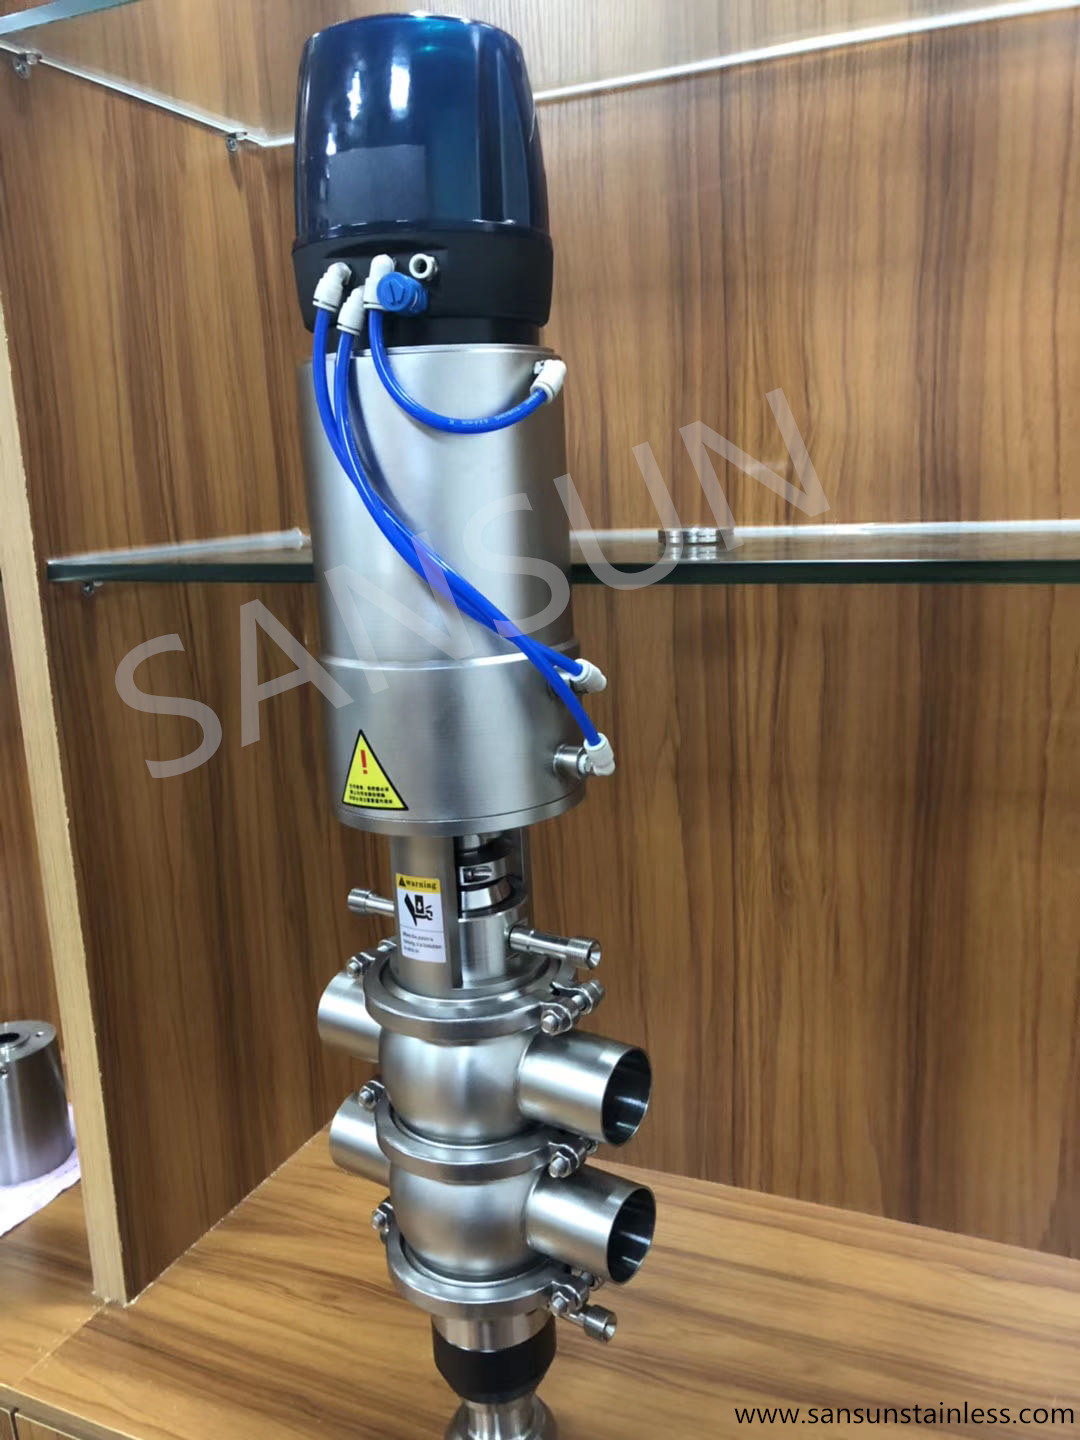 sanitary-stainless-steel-mixproof valve